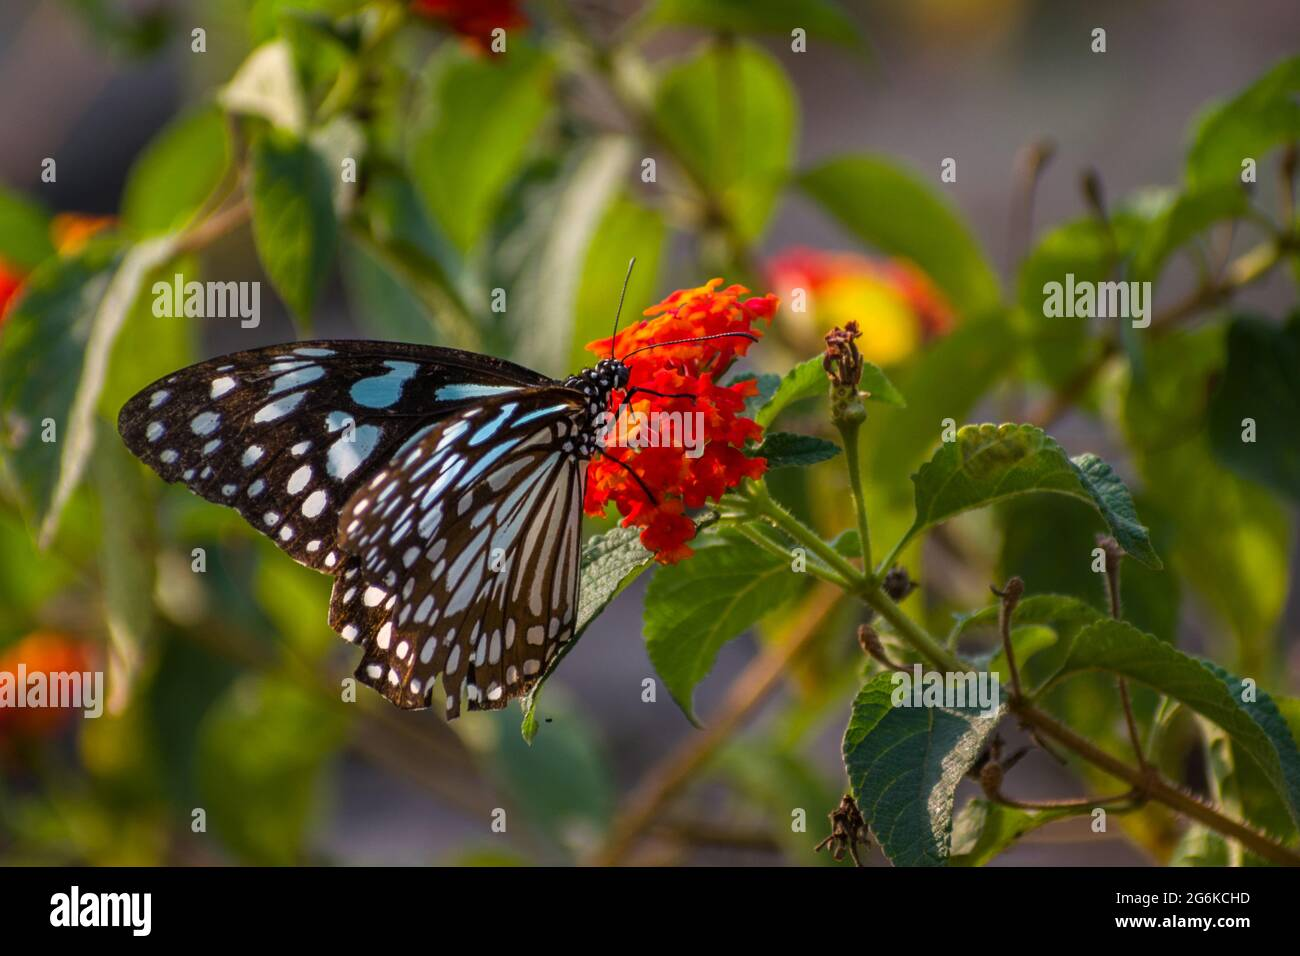 A beautiful Blue Tiger Butterfly perched on flowers at a park in Mumbai, India Stock Photo